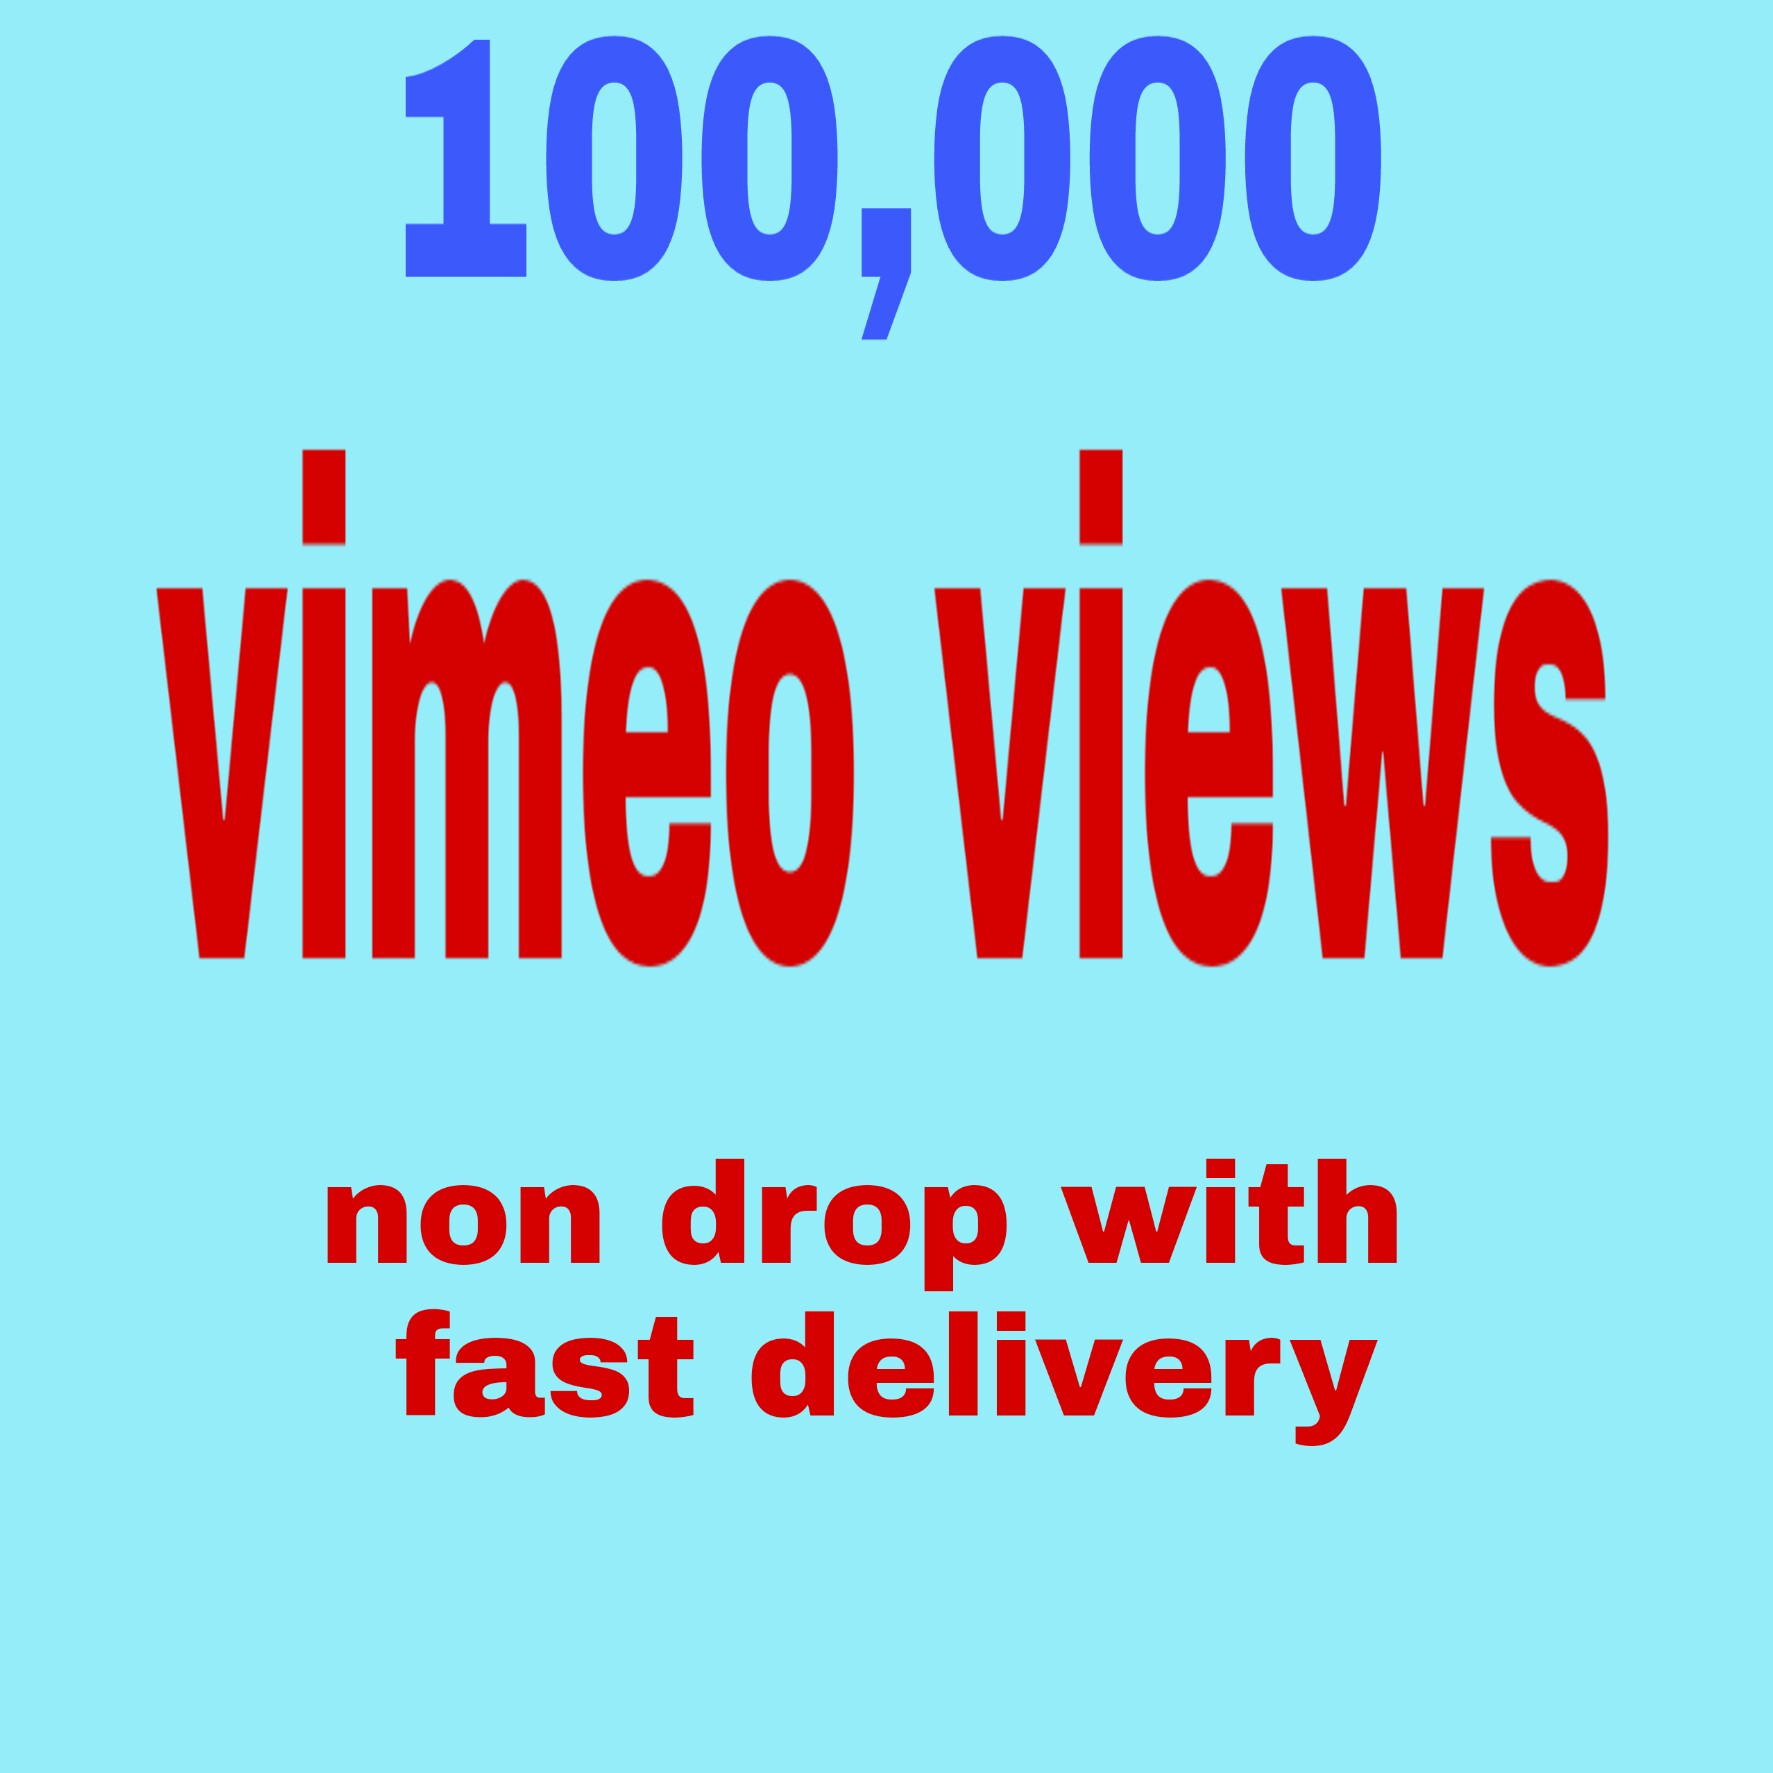 100,000 vimeo video hits non drop with fast delivery